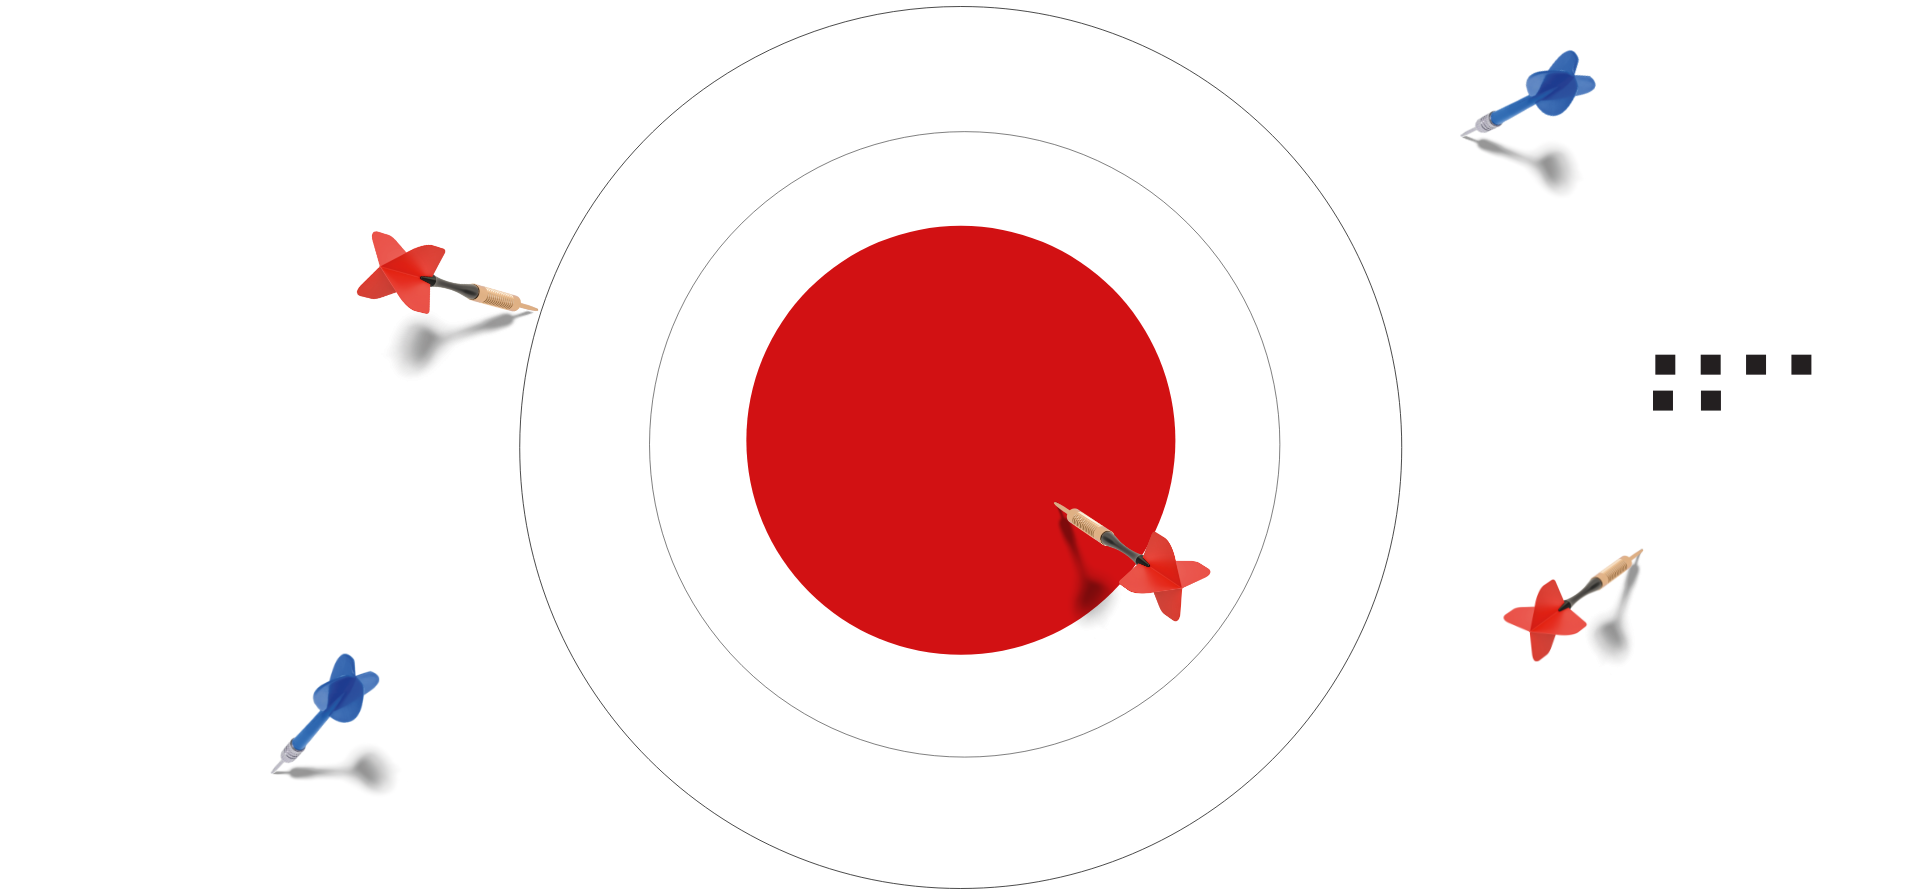 target-image-here